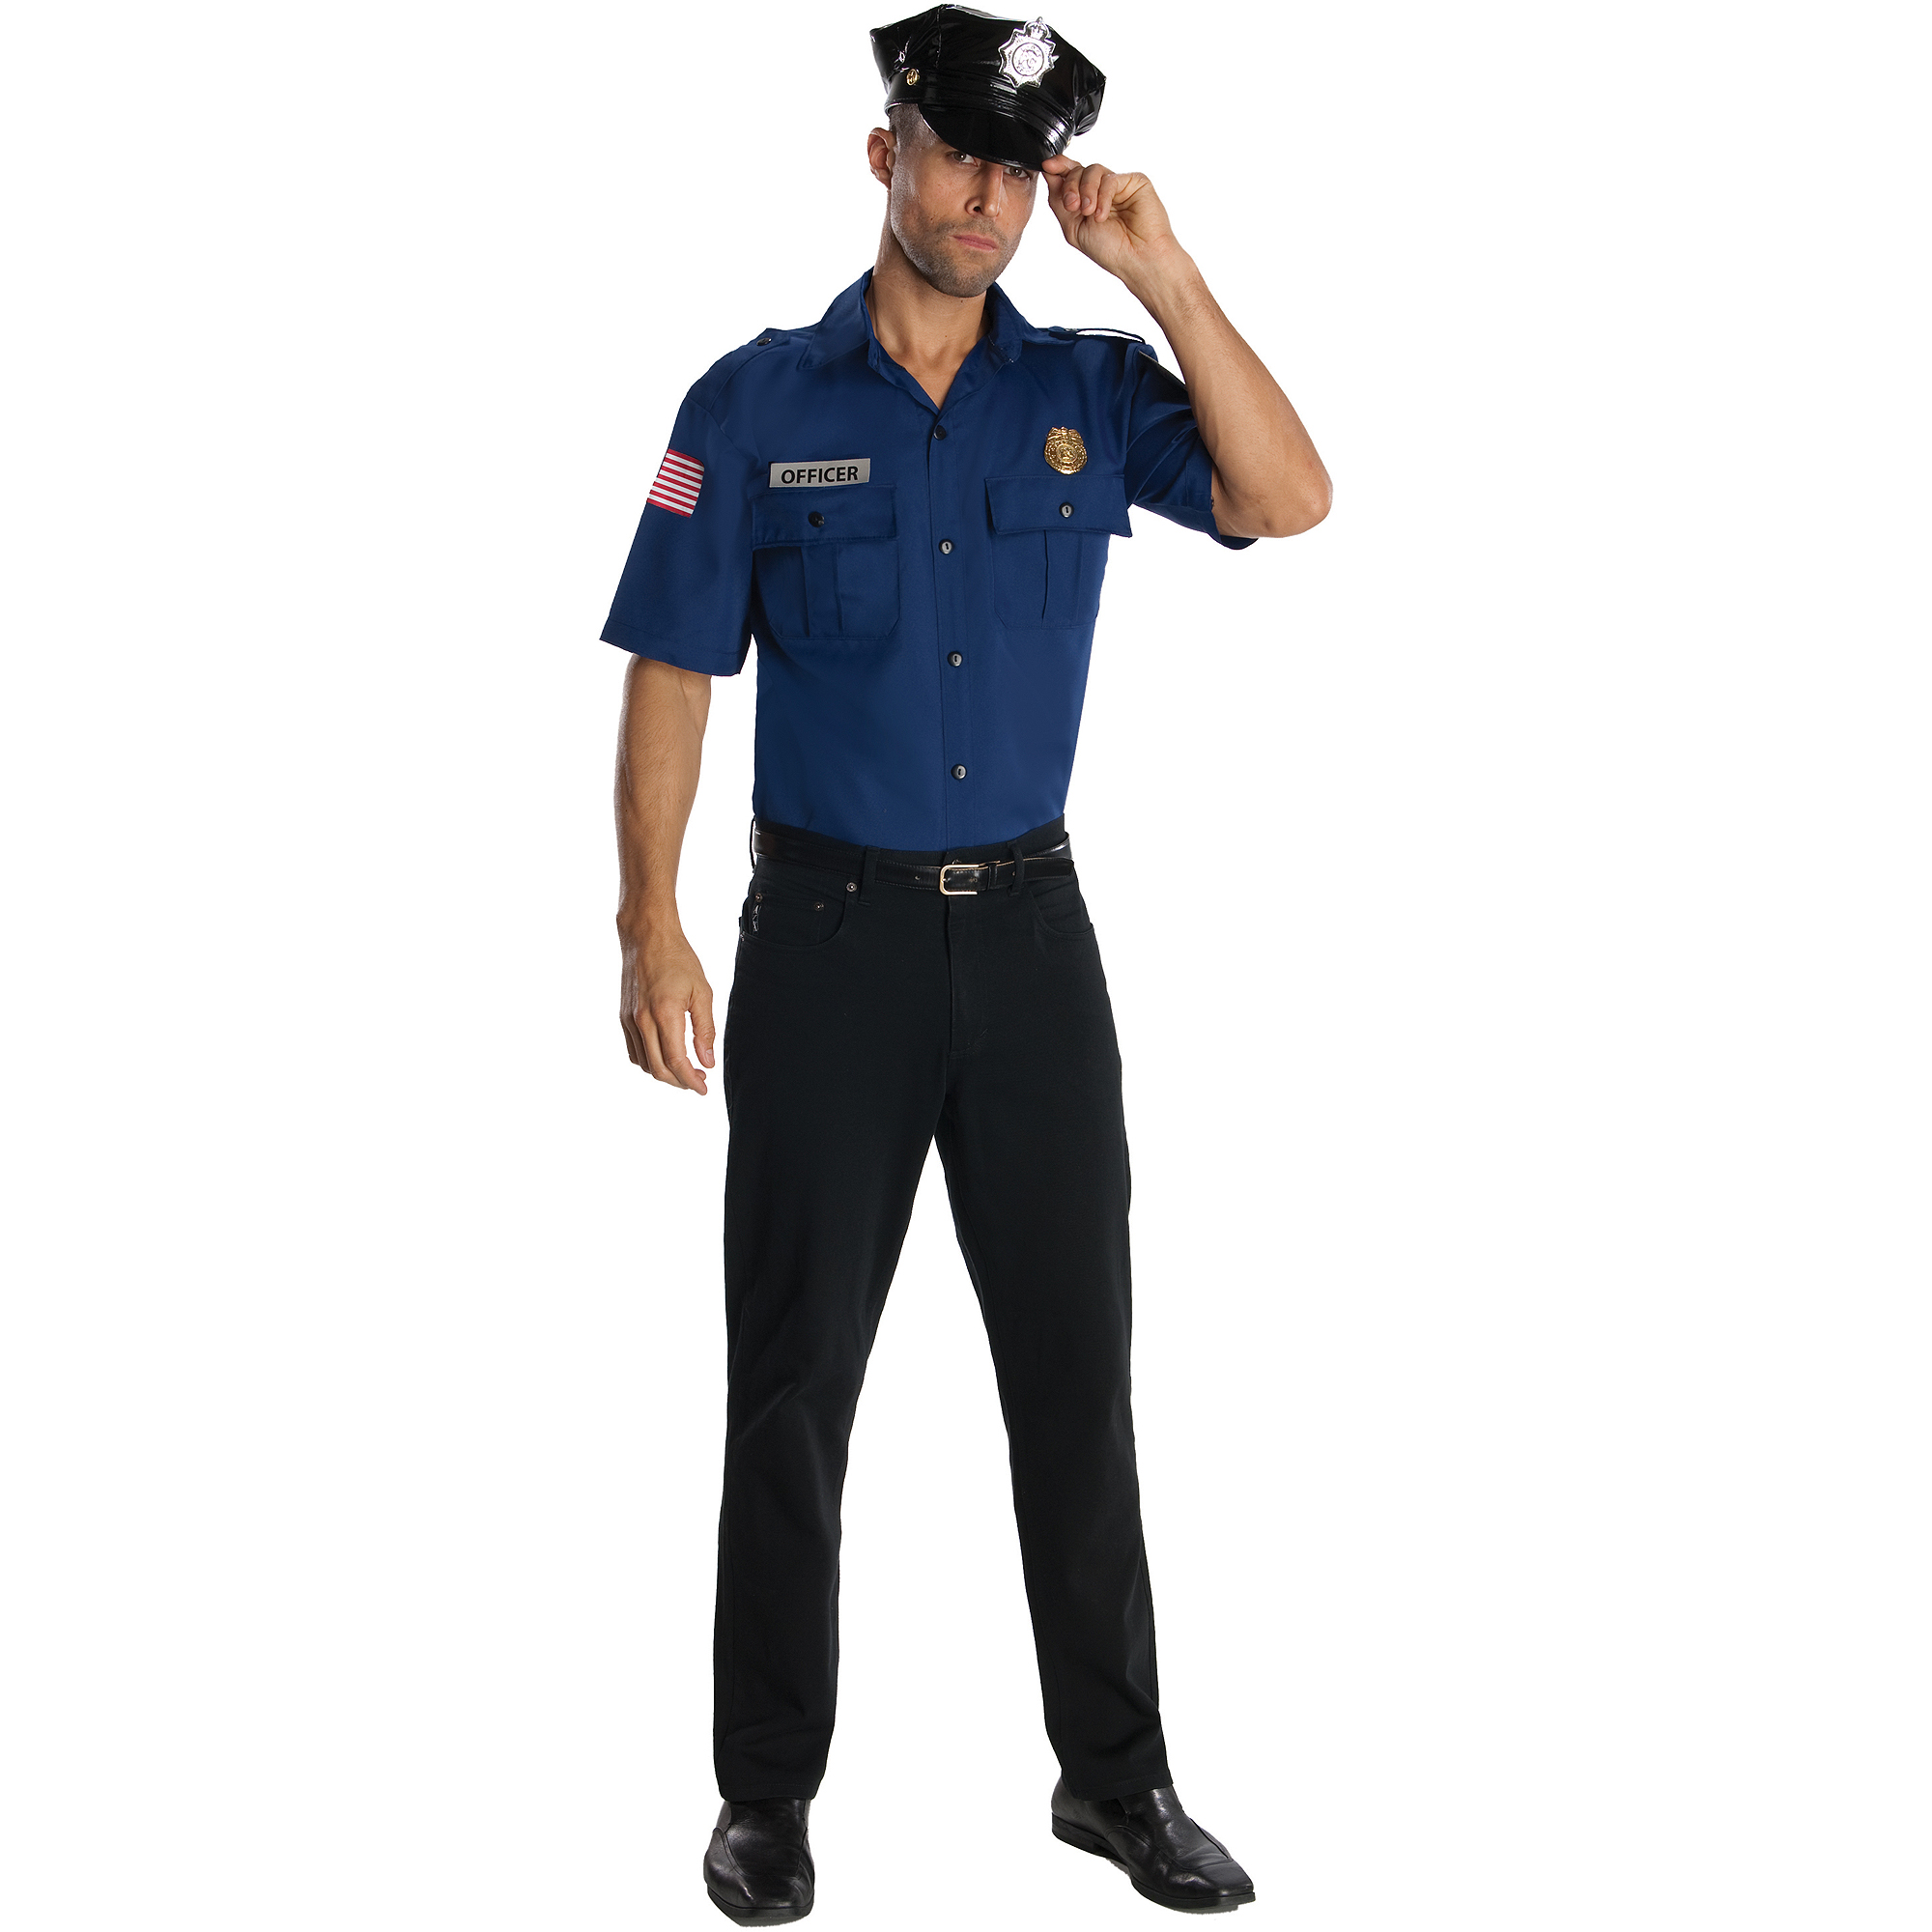 Police Officer Mens Halloween Costume - Walmart.com